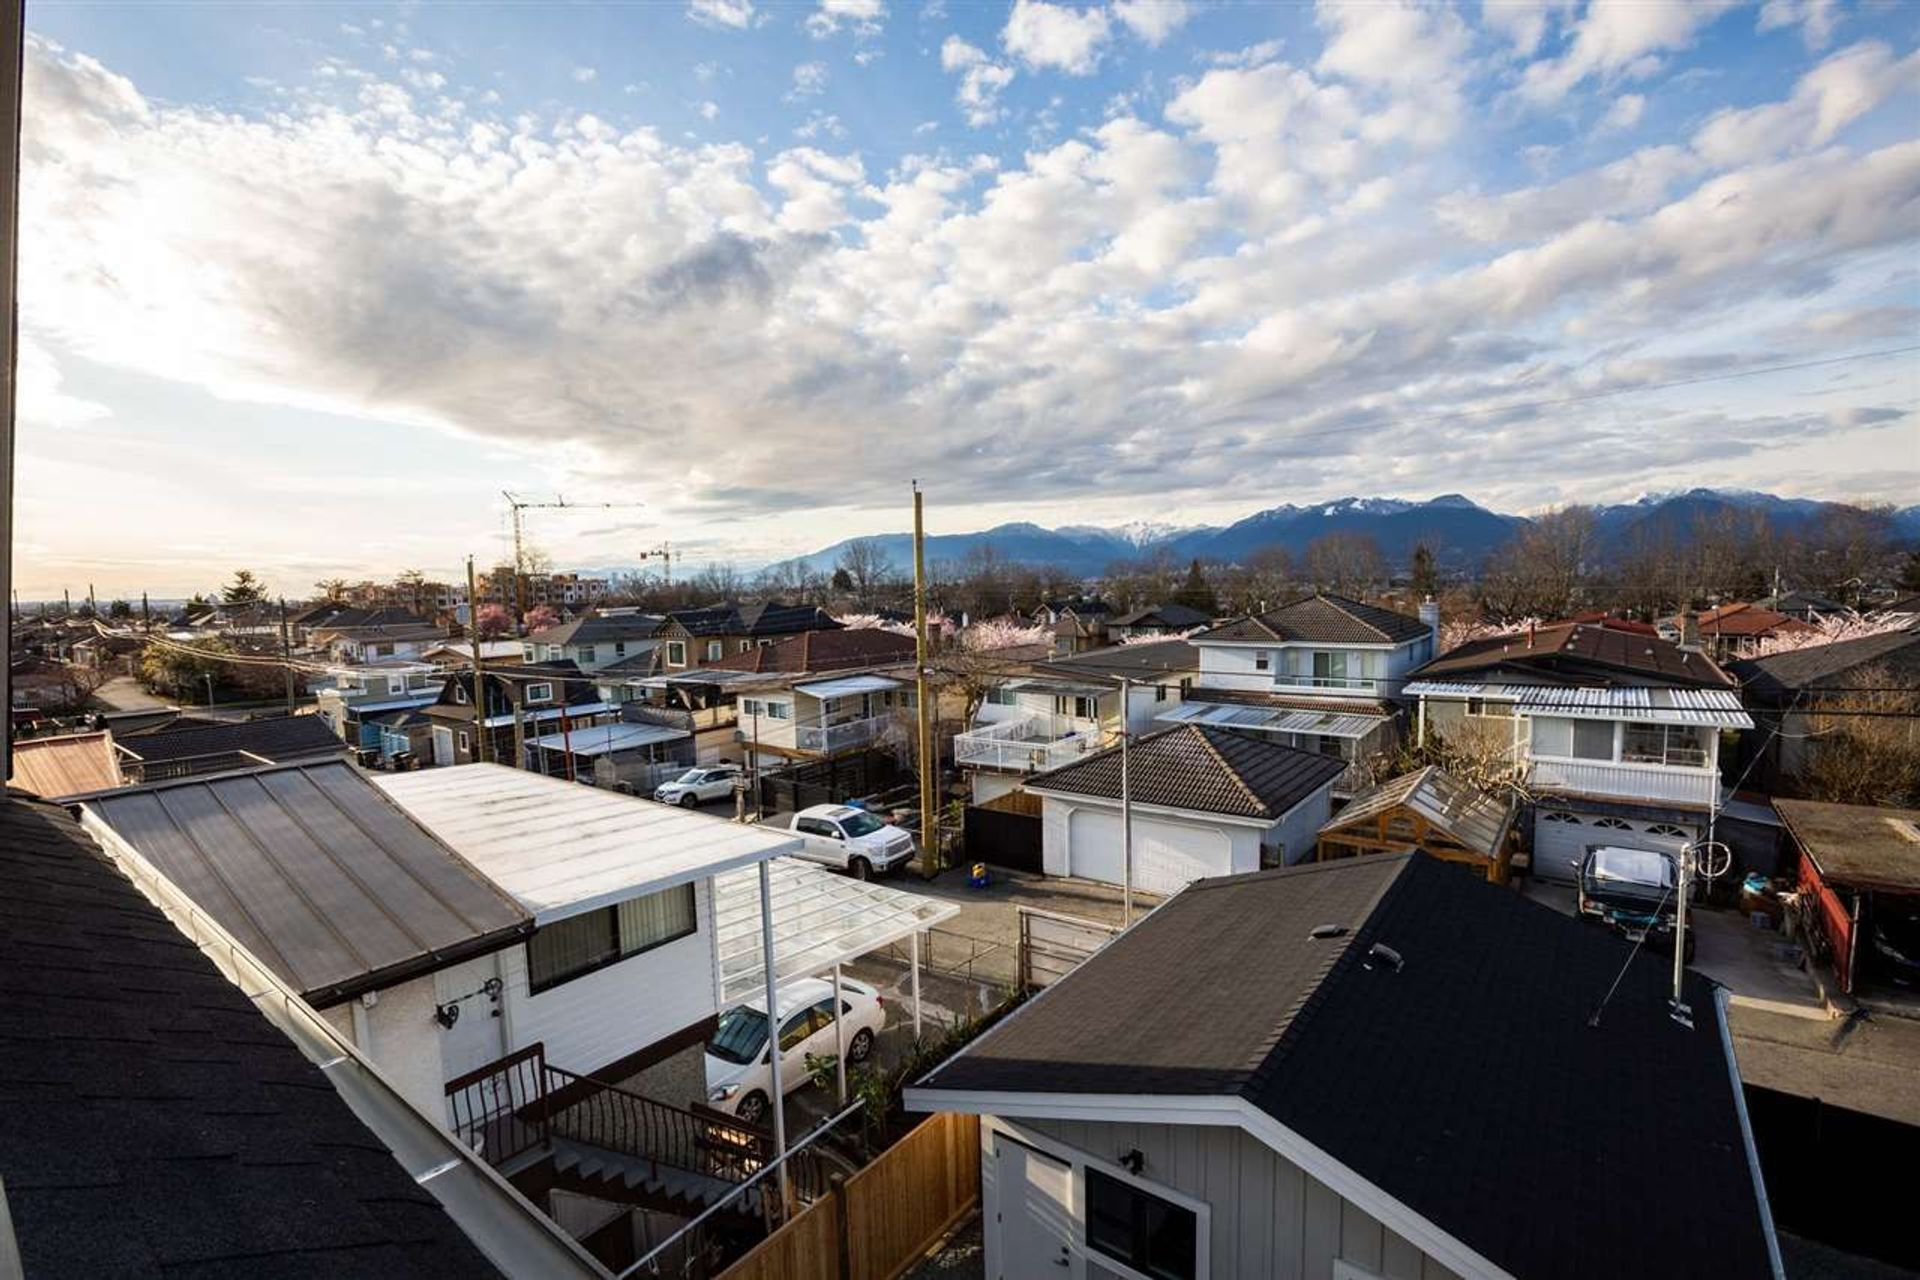 3439-e-24th-avenue-renfrew-heights-vancouver-east-26 at 3439 E 24th Avenue, Renfrew Heights, Vancouver East